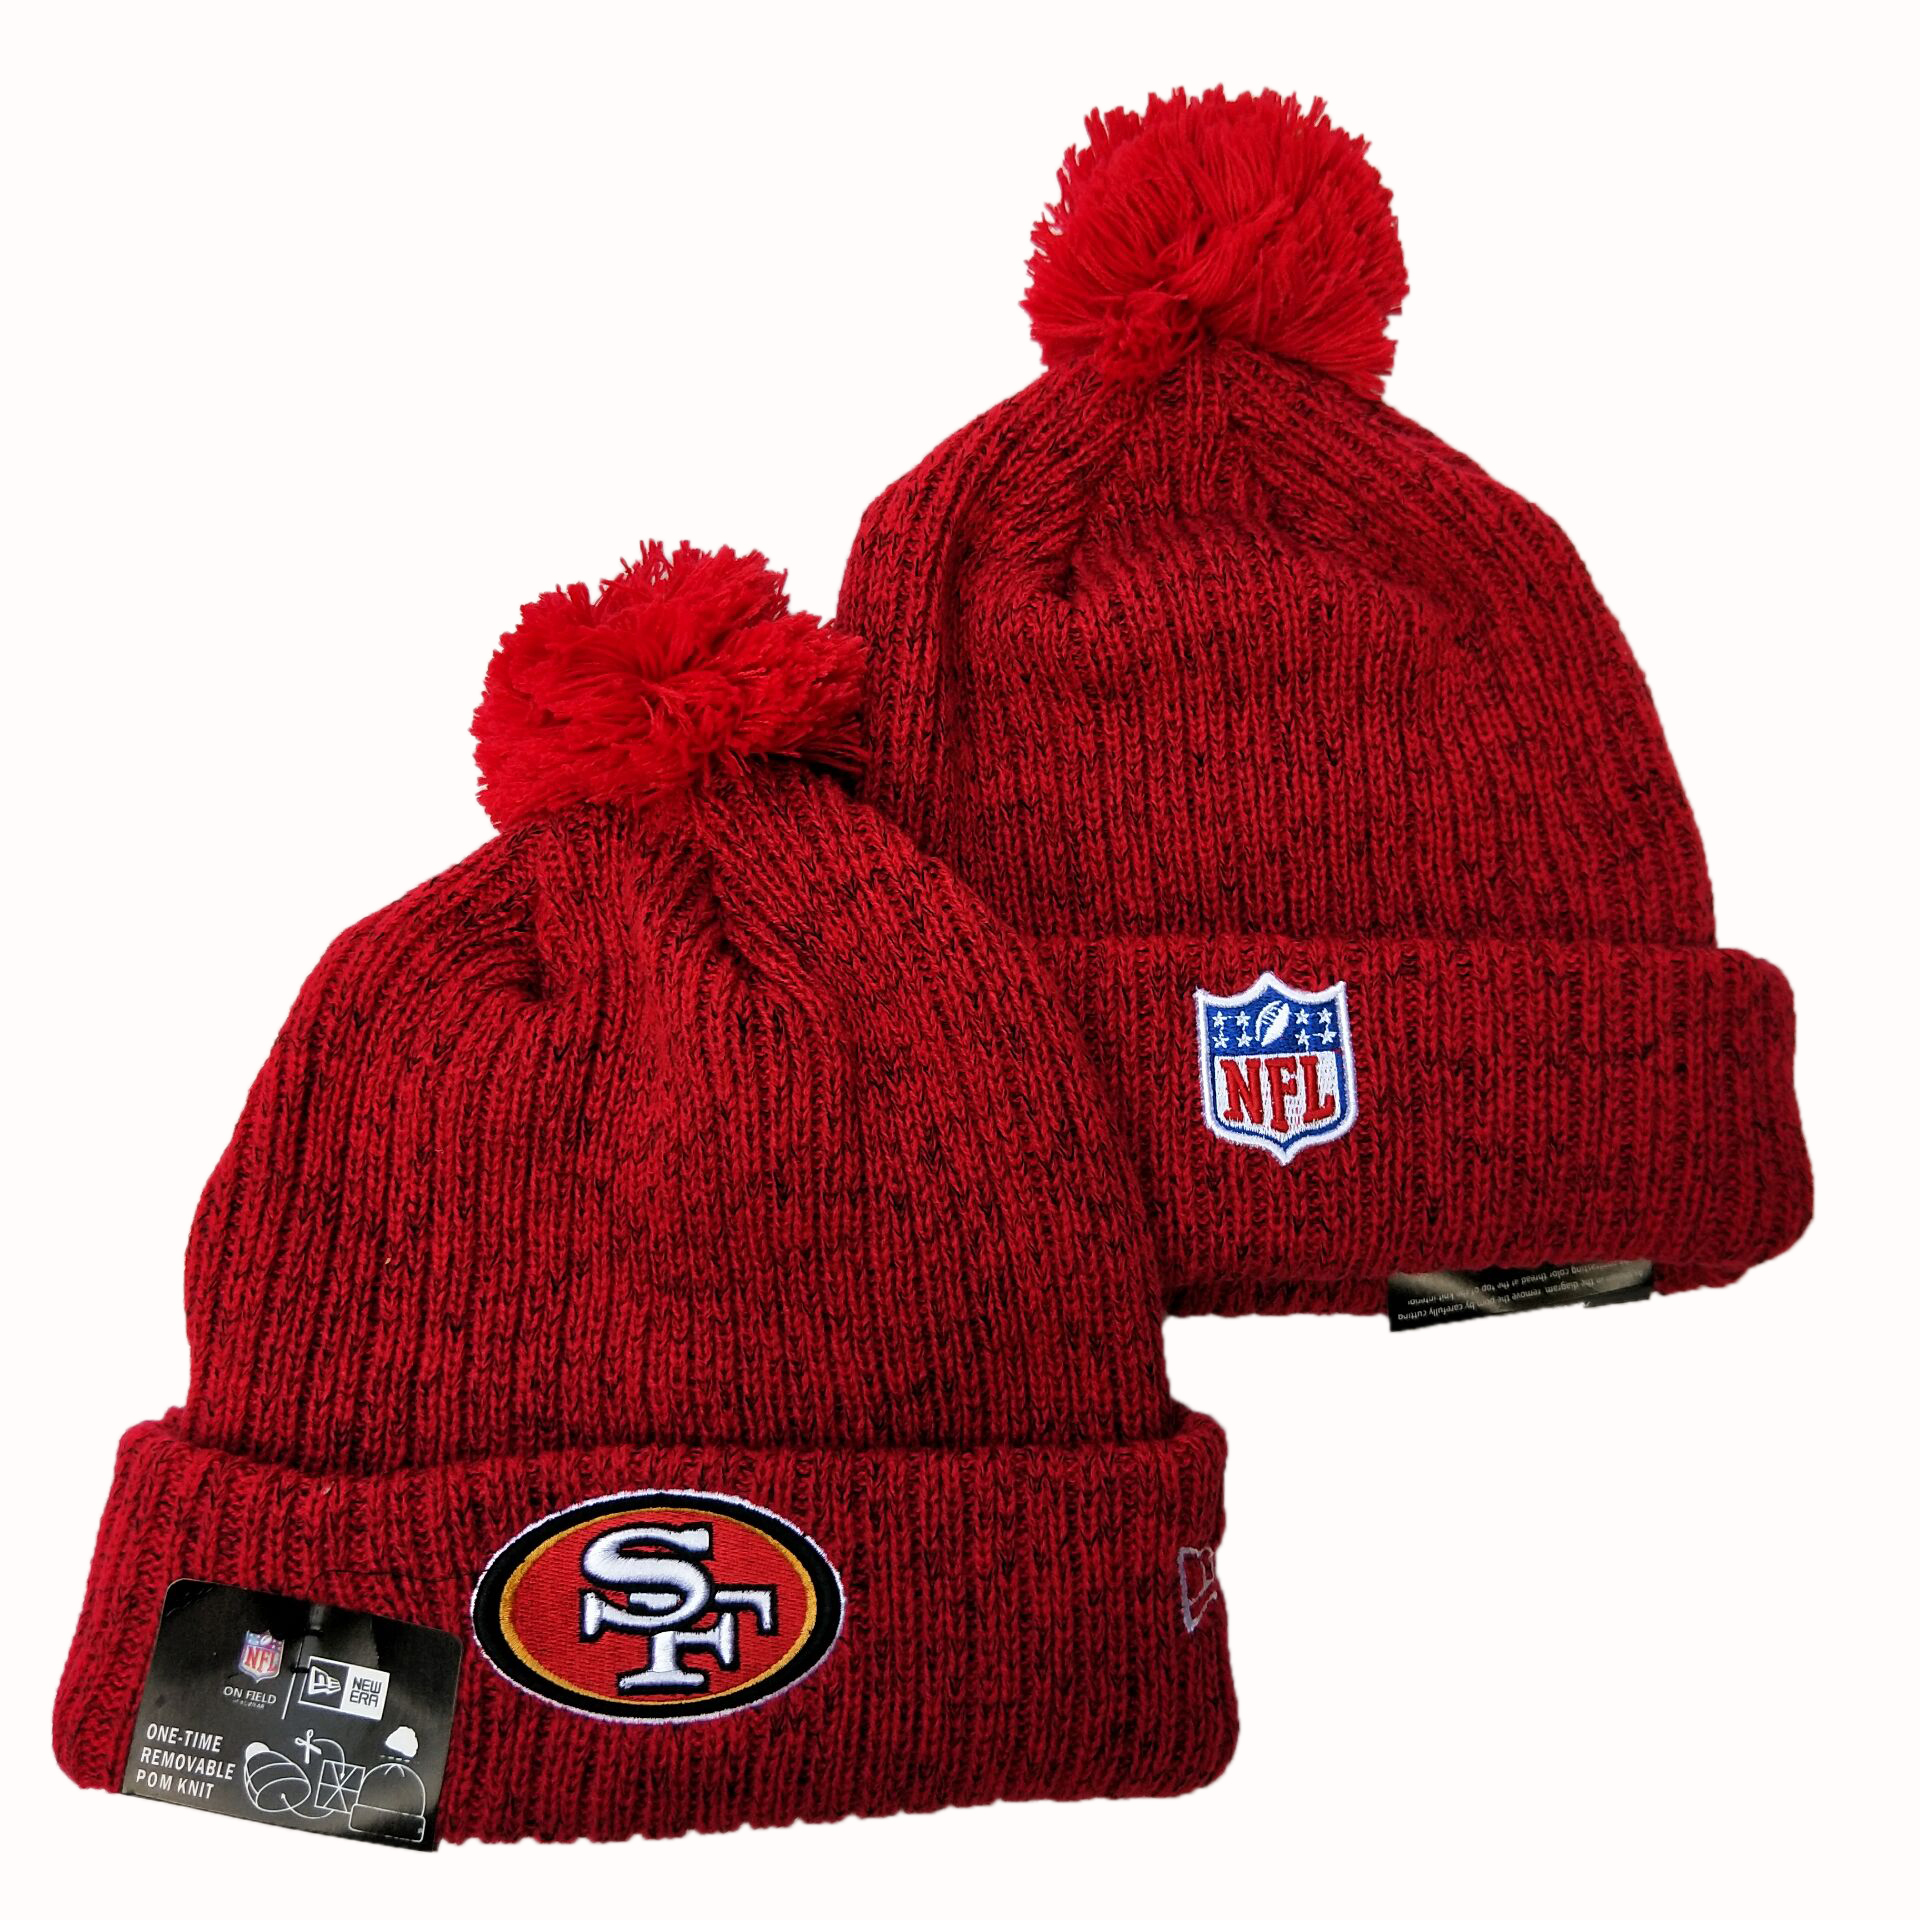 NFL San Francisco 49ers New Era 2019 Knit Hats 066